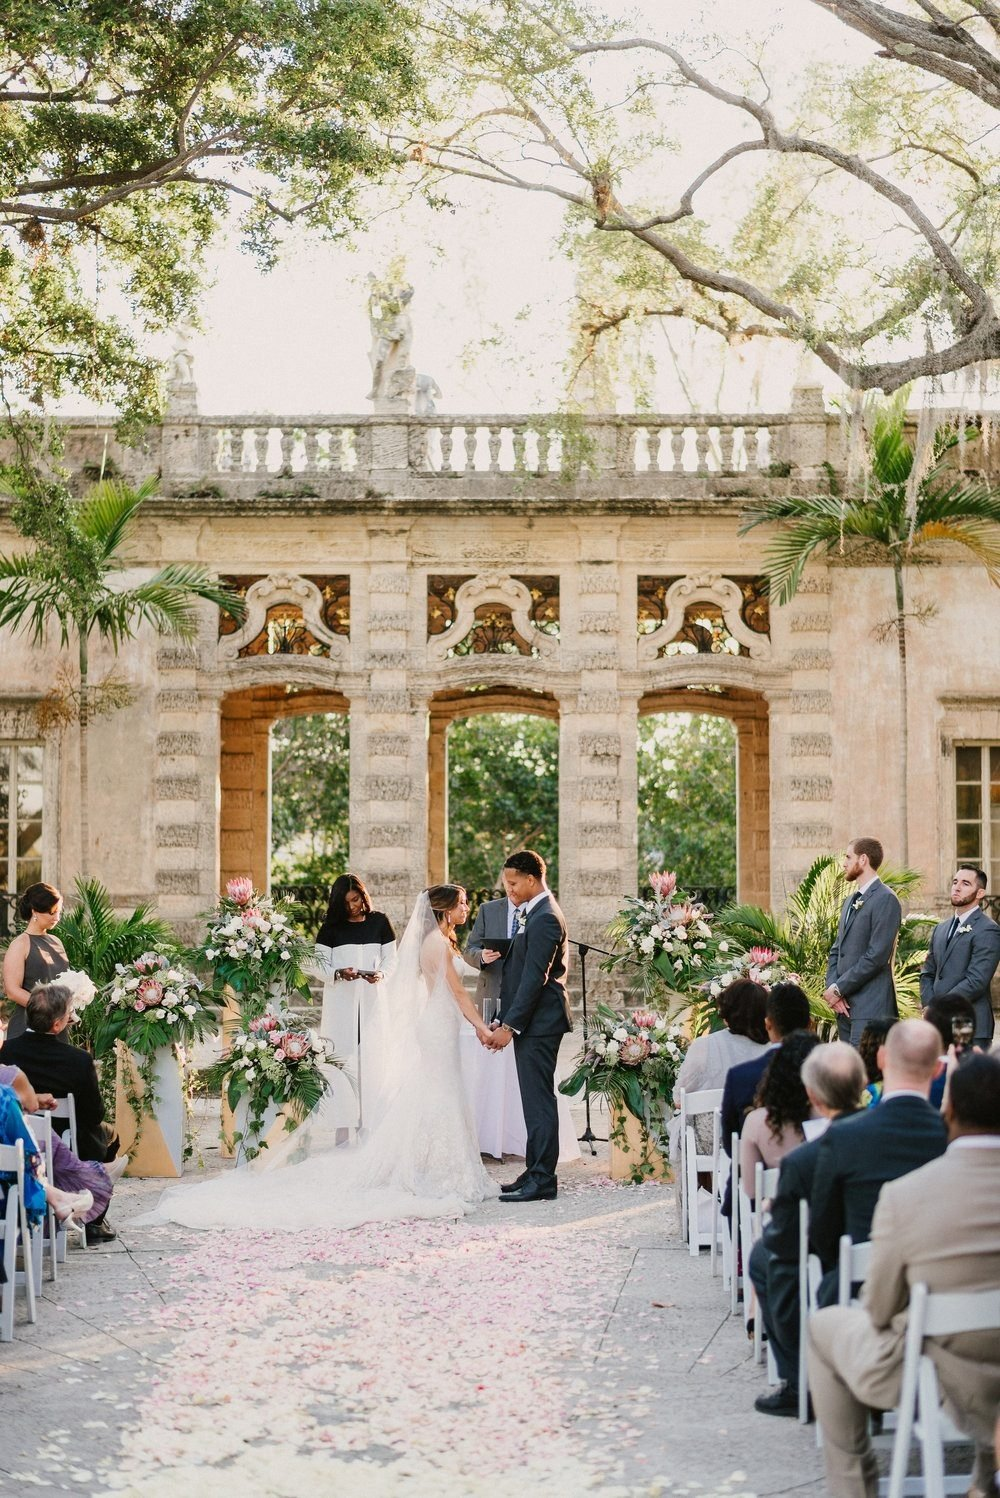 https://0201.nccdn.net/1_2/000/000/19a/f1c/industrial-wedding-vibes-miami-nuptials-11-1000x1498.jpg